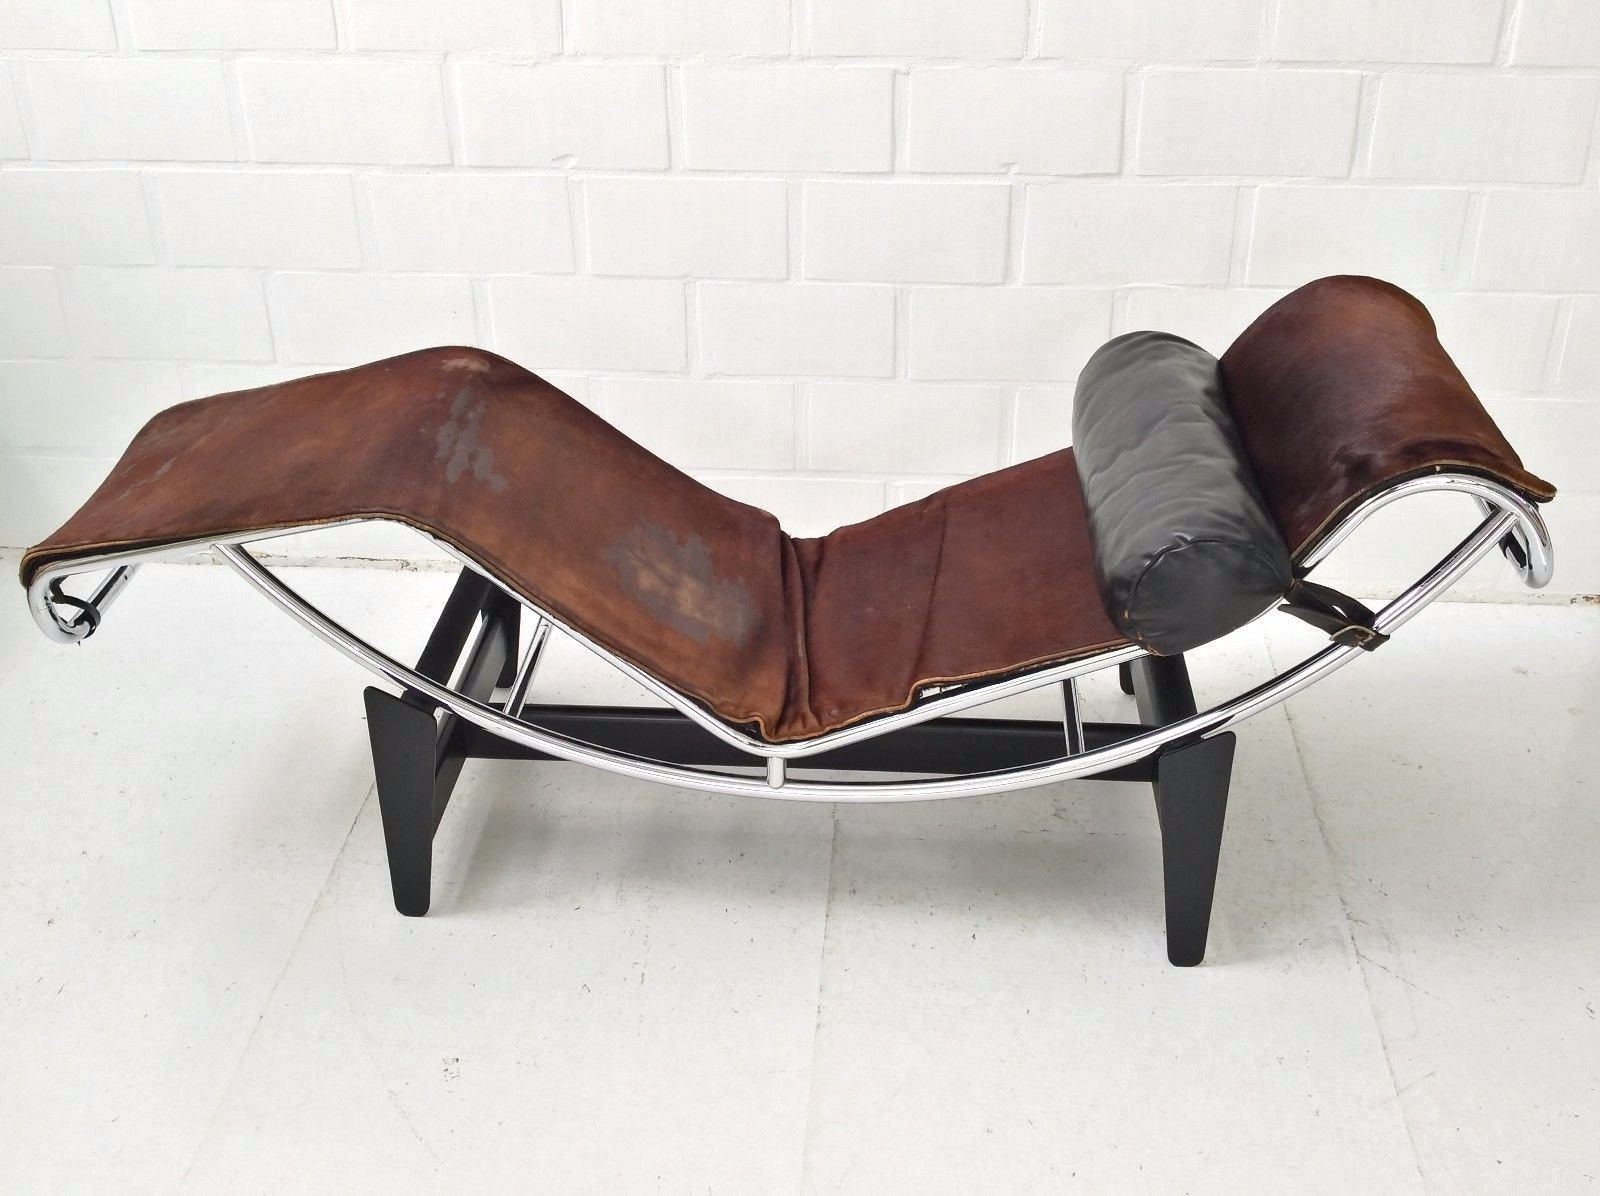 Lc4 chaise longue by le corbusier charlotte perriand for Chaise le corbusier